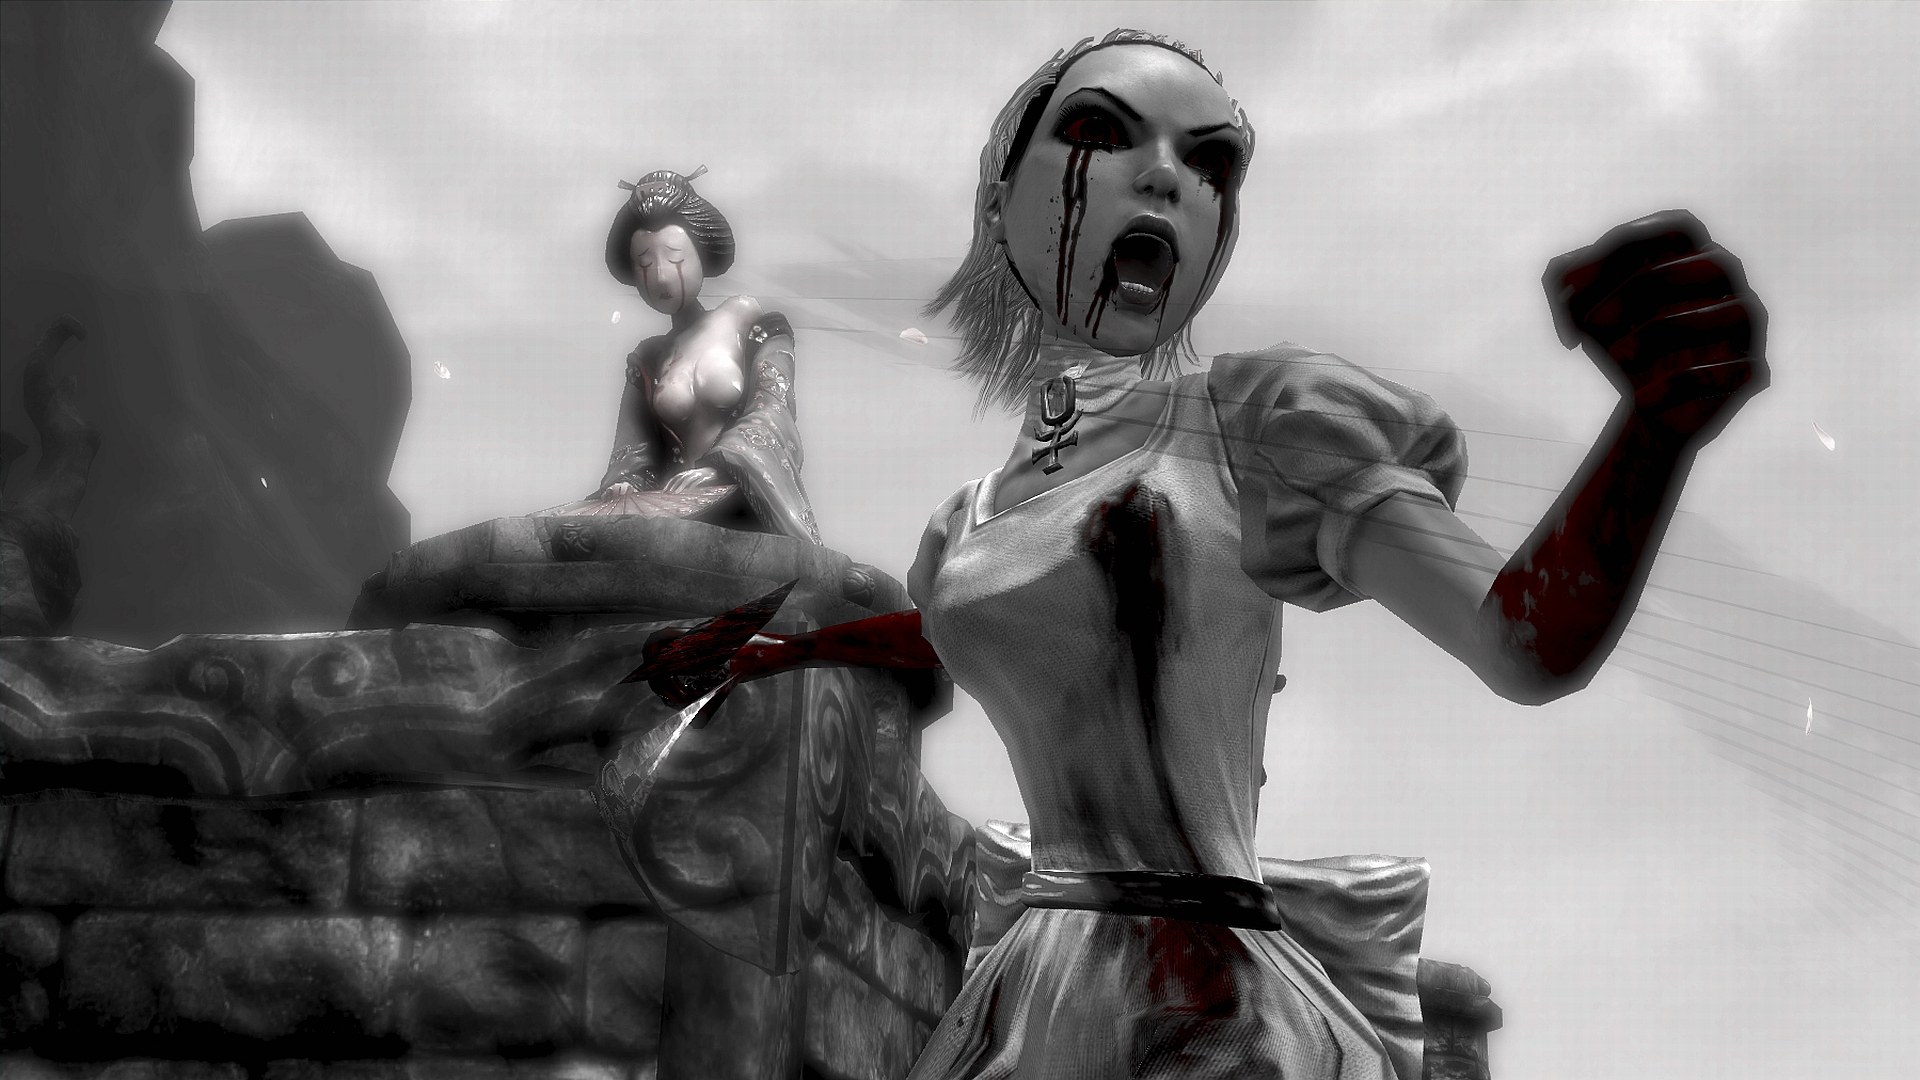 Alice Madness Returns Hd Wallpaper Background Image 1920x1080